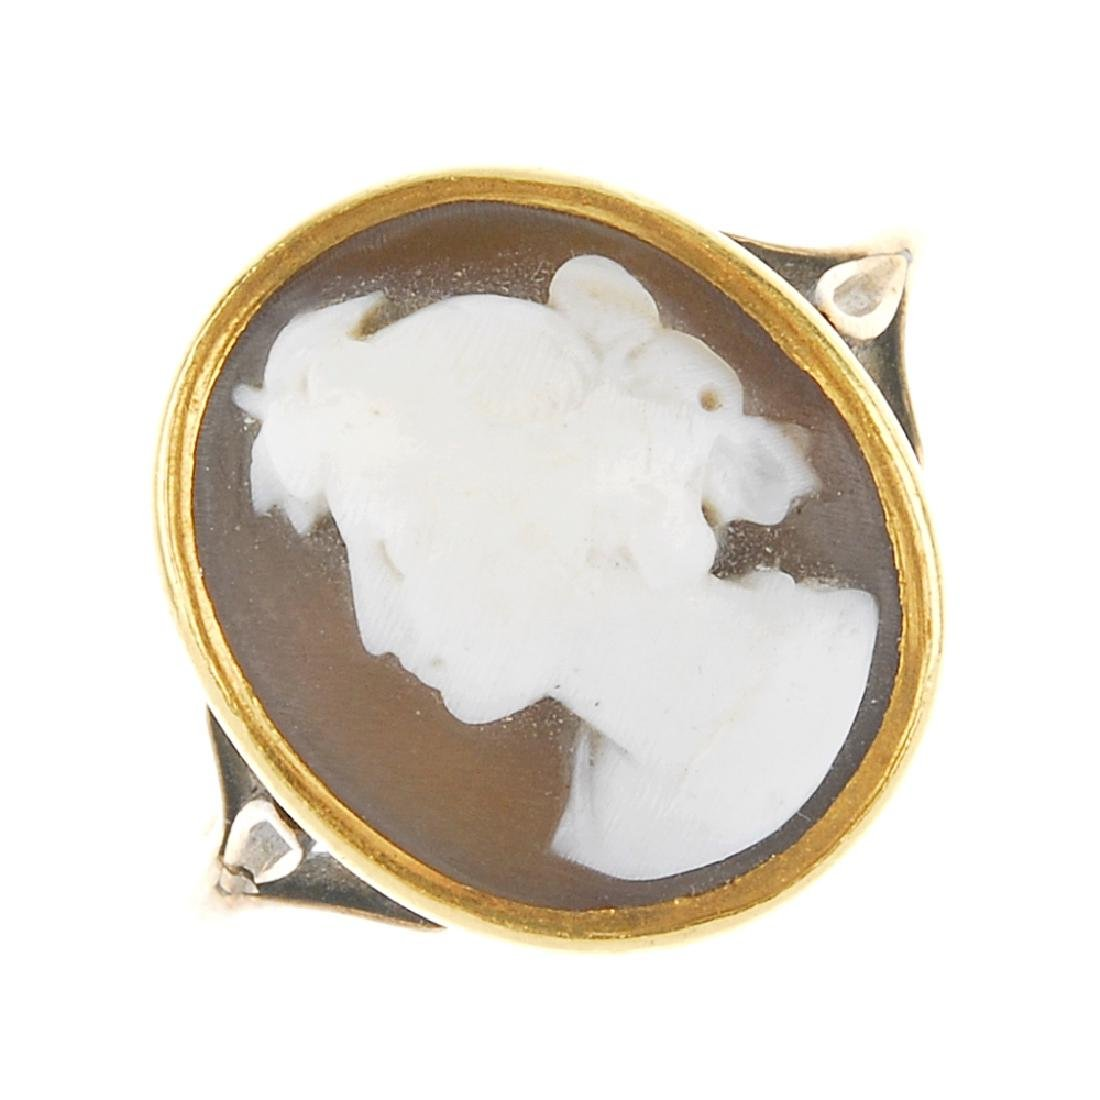 Four cameo rings. Each designed with oval cameo panels